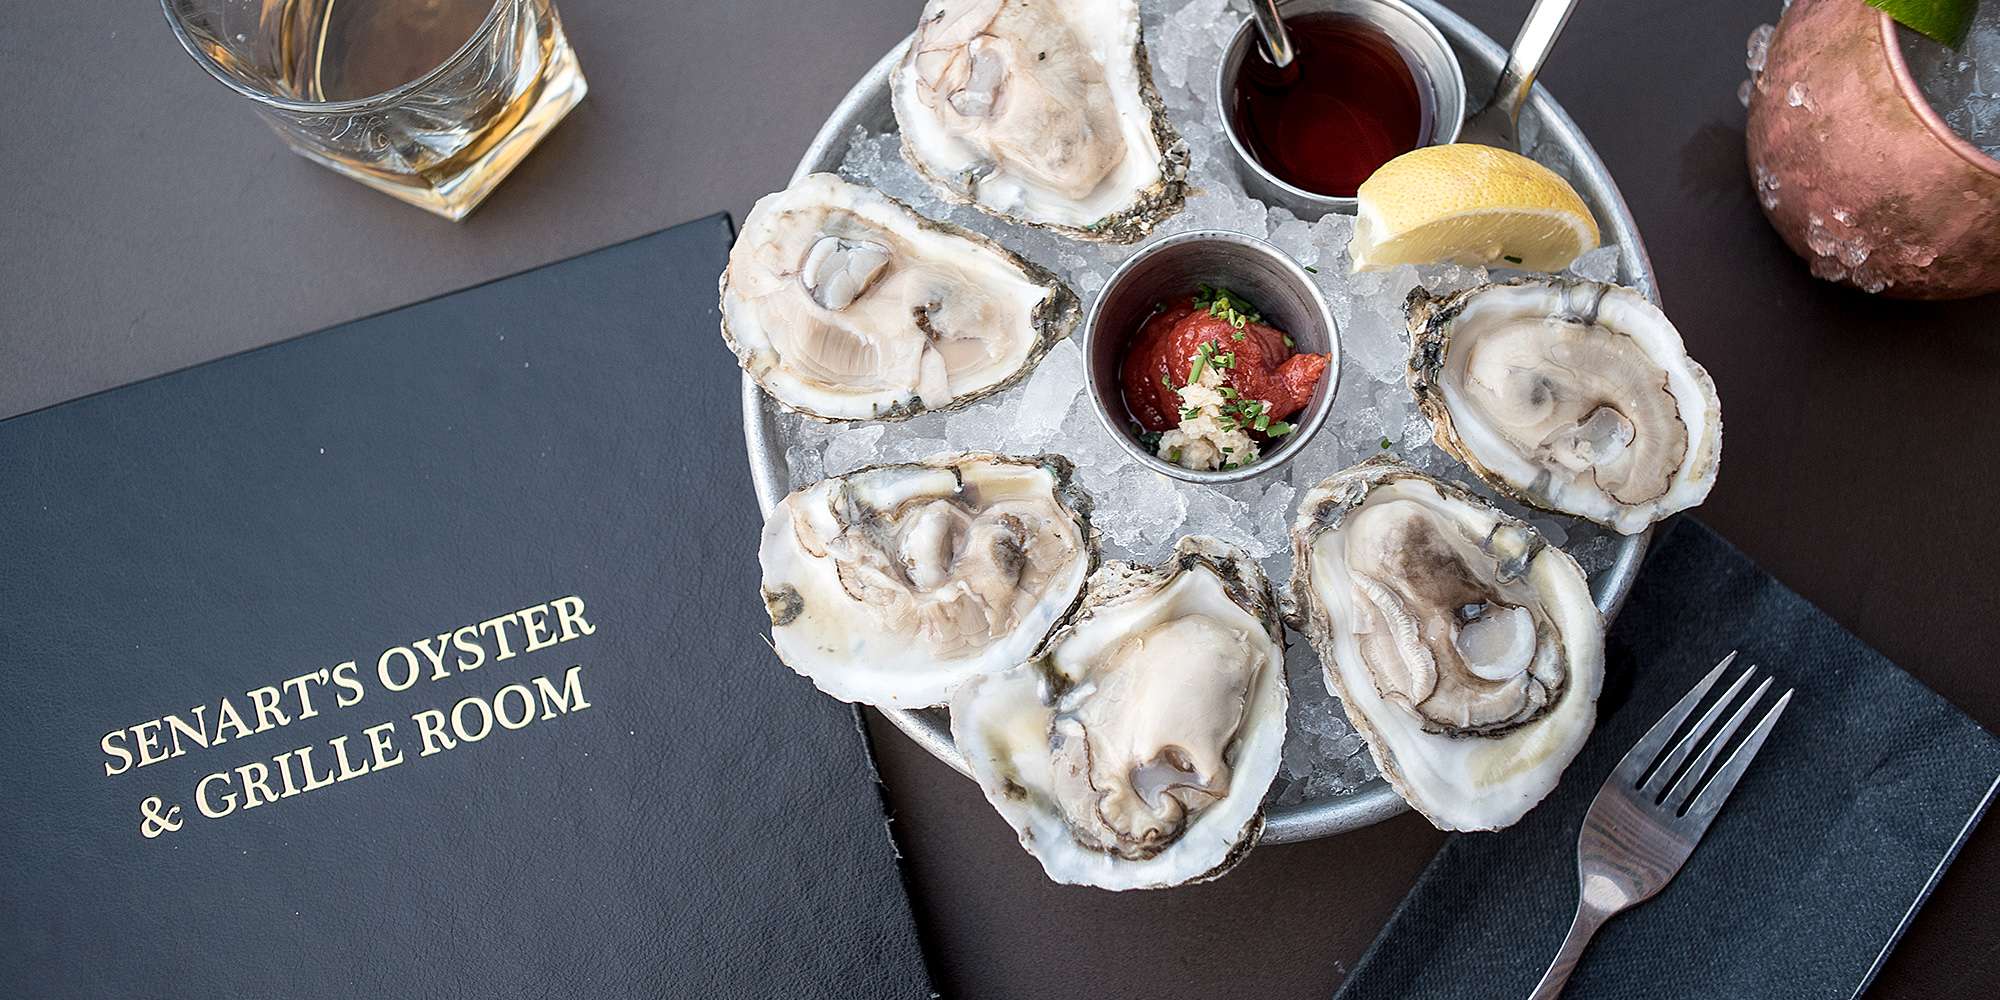 SENART'S OYSTER AND GRILLE ROOM